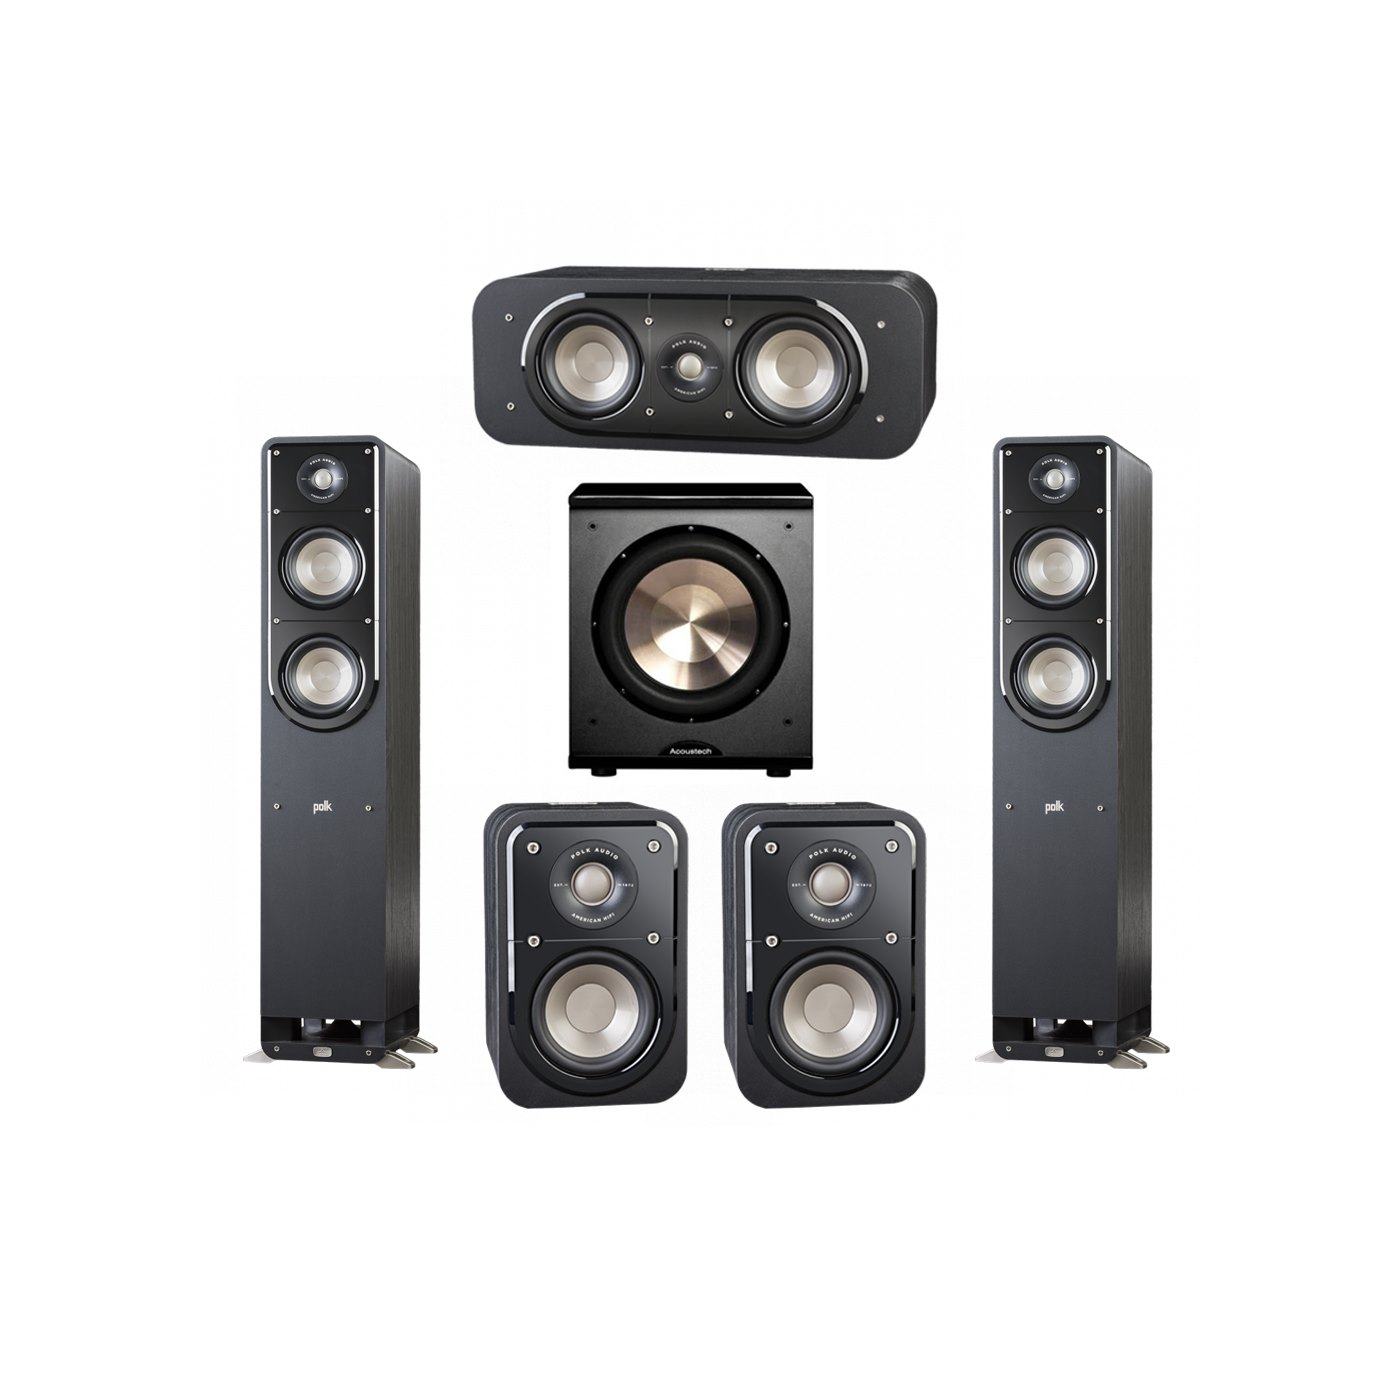 Polk Audio Signature 5.1 System with 2 S50 Tower Speaker, 1 Polk S30 Center Speaker, 2 Polk S10 Surround Speaker, 1 BIC/Acoustech Platinum Series PL-200 Subwoofer